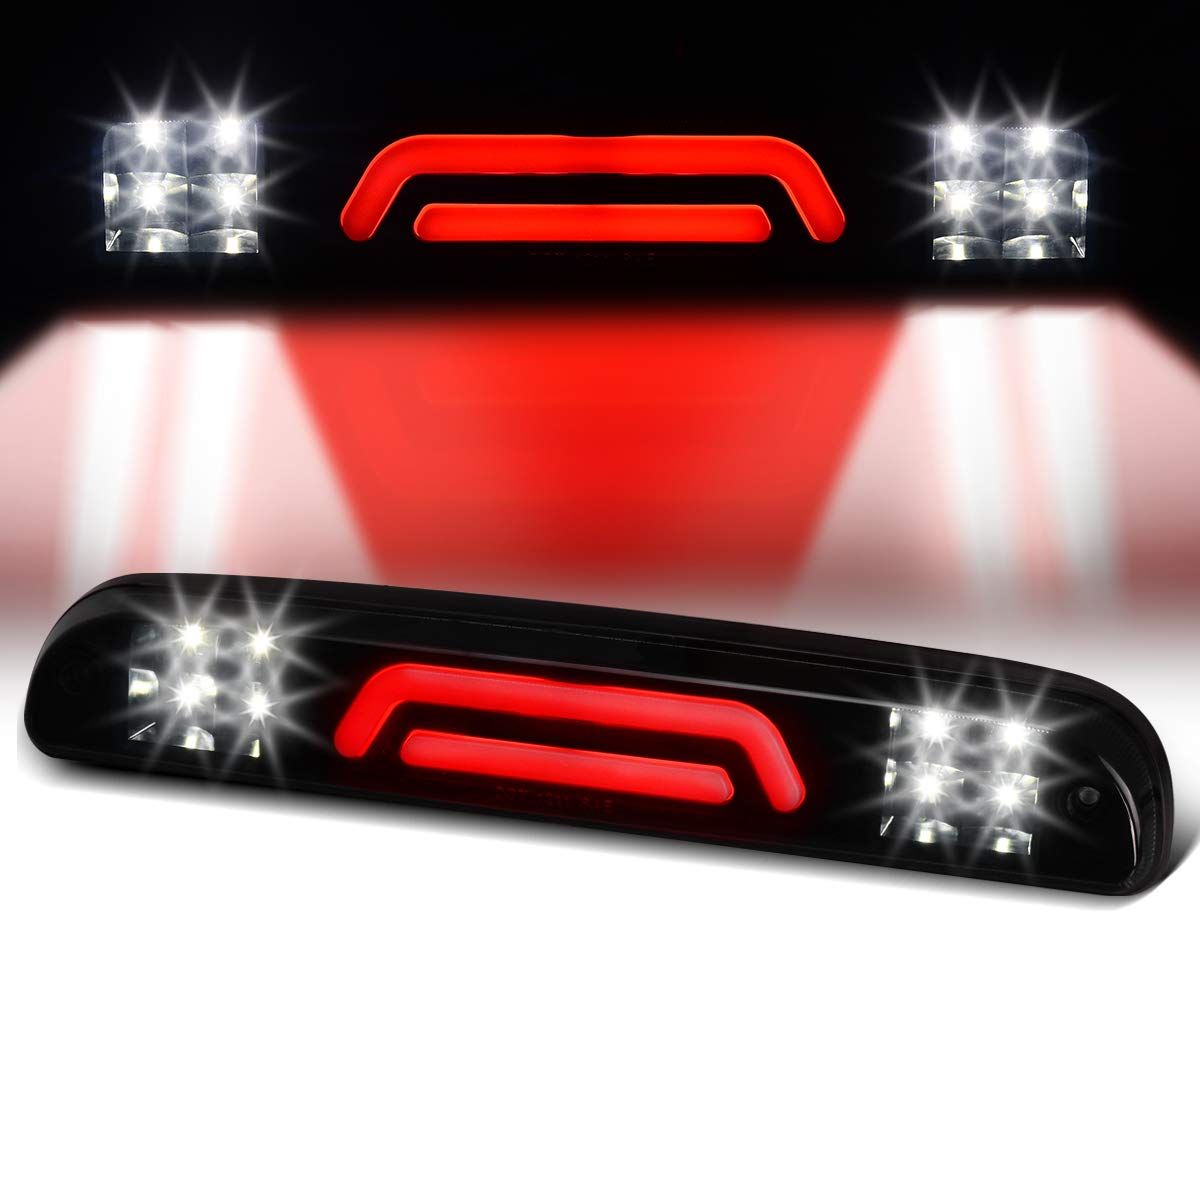 Ford Ranger 1993-2011 Tail Cargo Lamps 3D LED BAR High Mount 3rd Third Brake Light Waterproof Replacement For Ford F-250 F-350 F-450 F-550 Super Duty 1999-2016